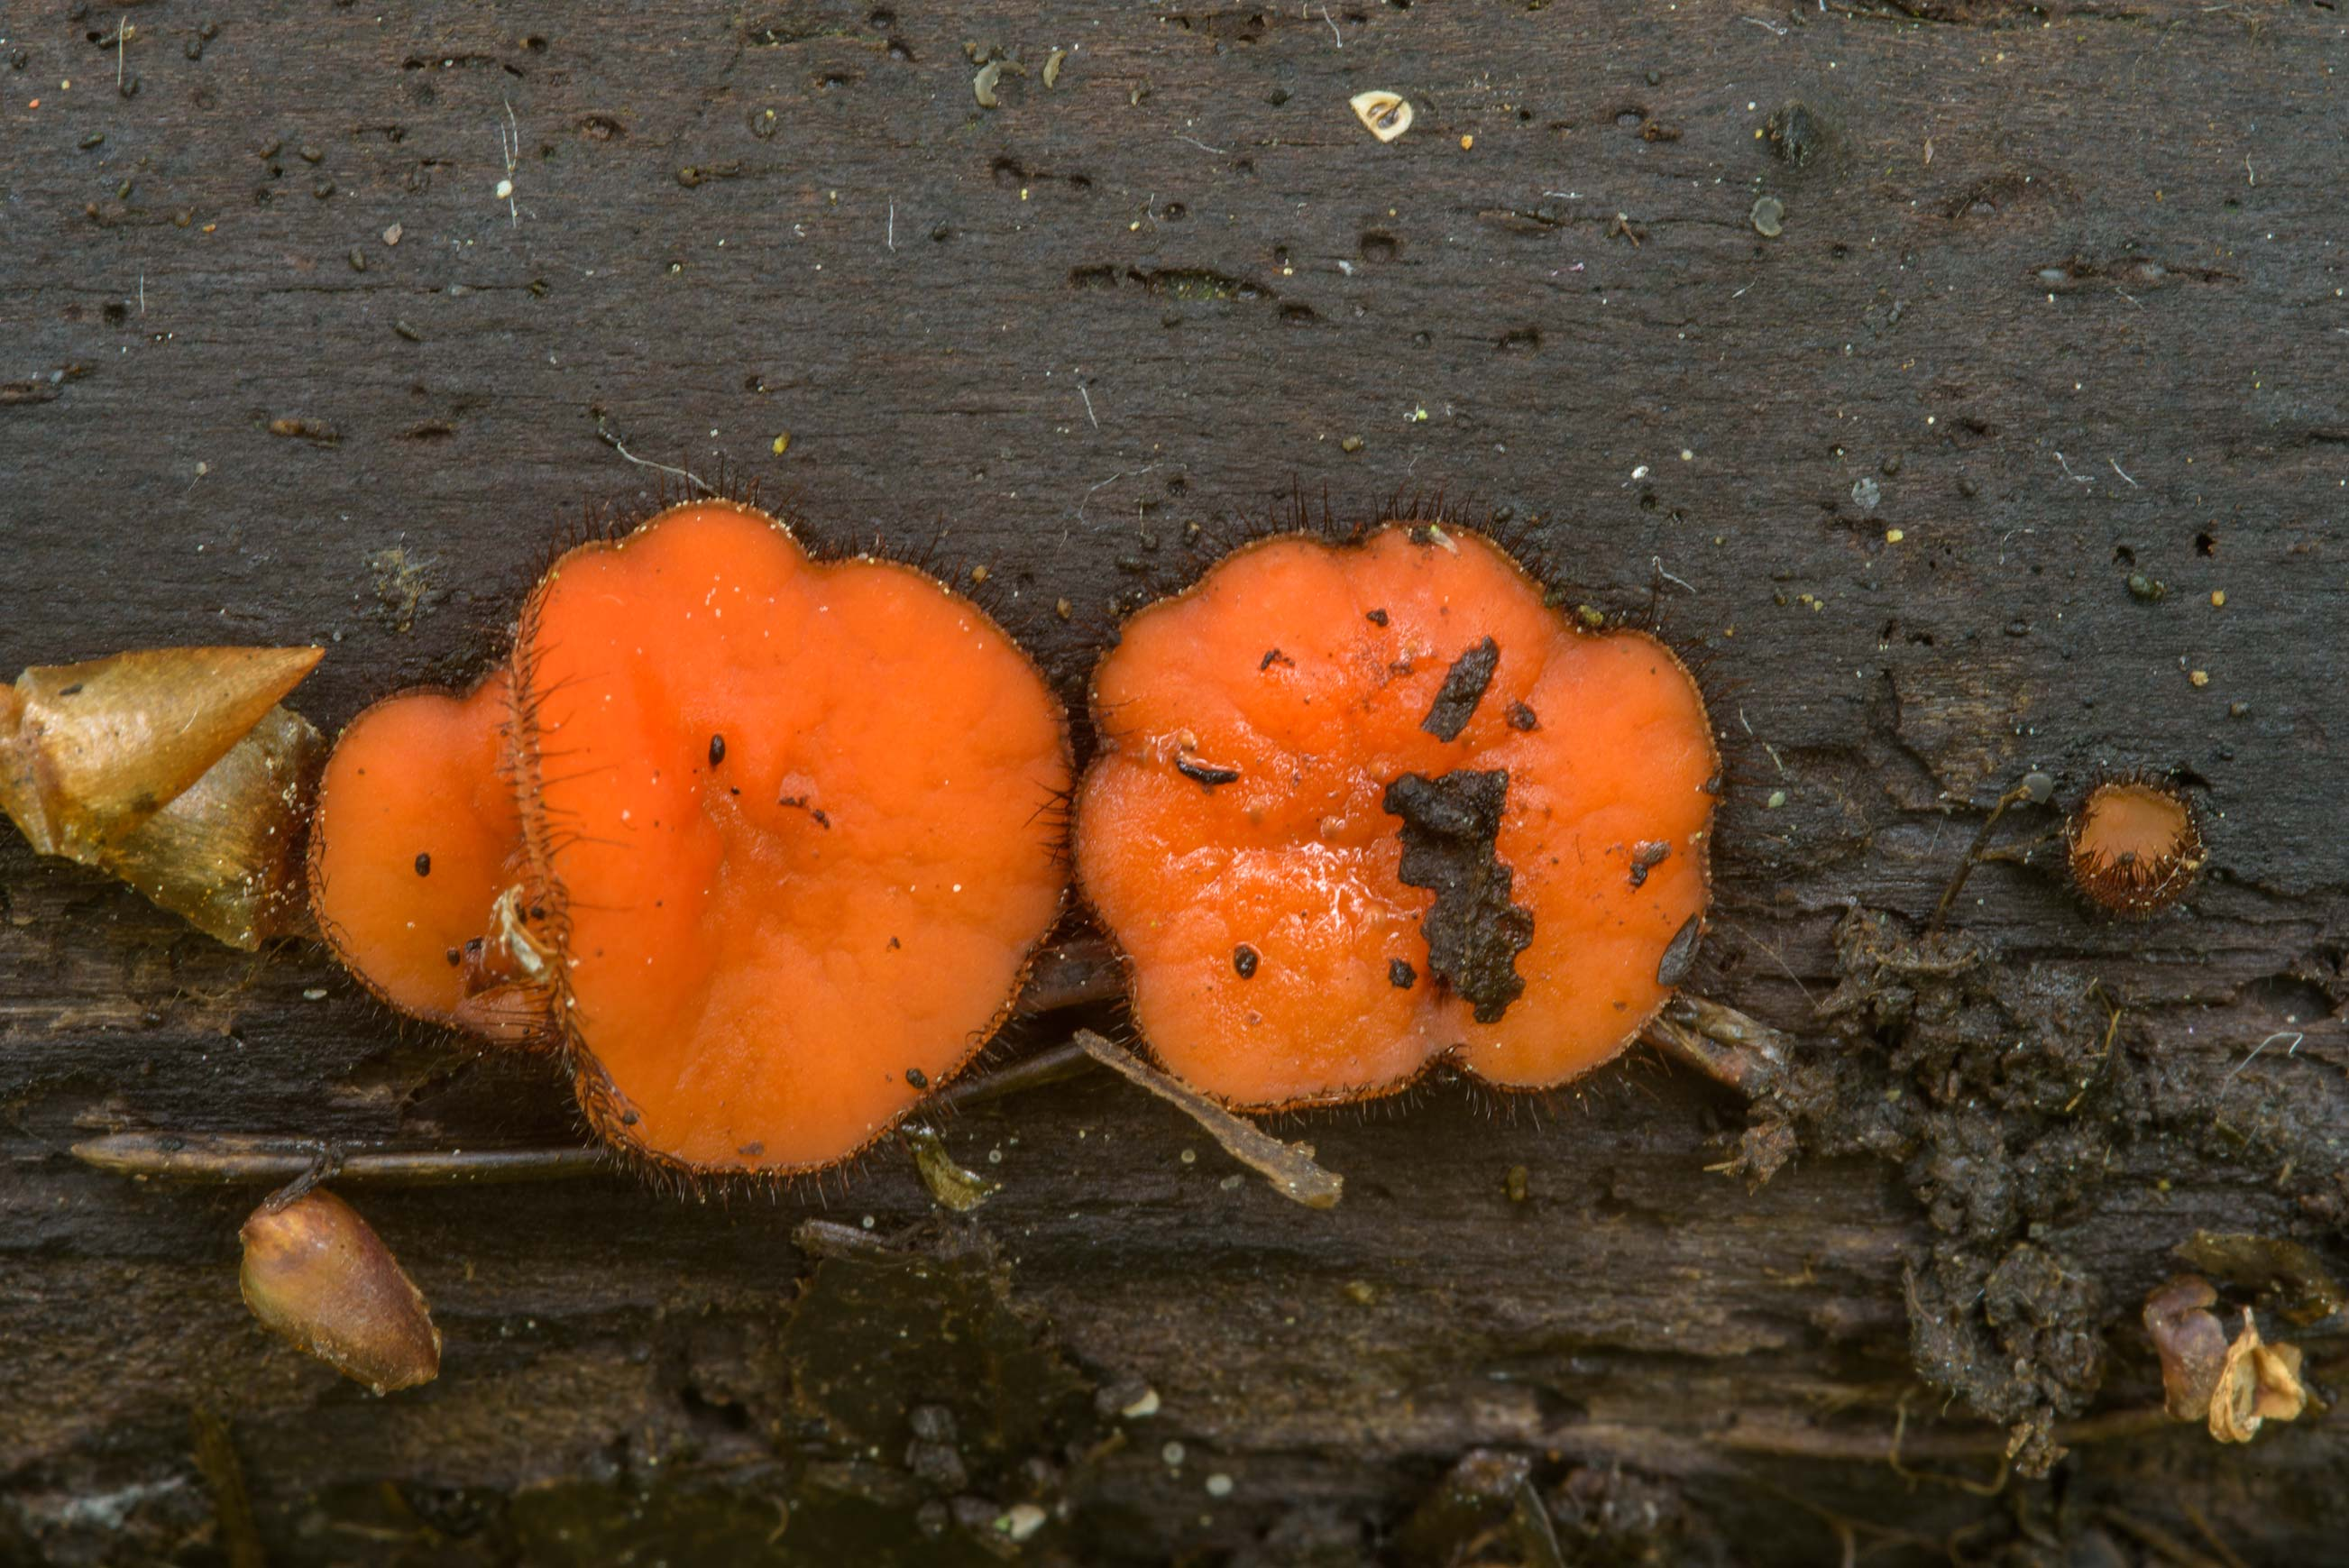 Common eyelash fungus (Scutellinia scutellata) on...Nos, west from St.Petersburg. Russia